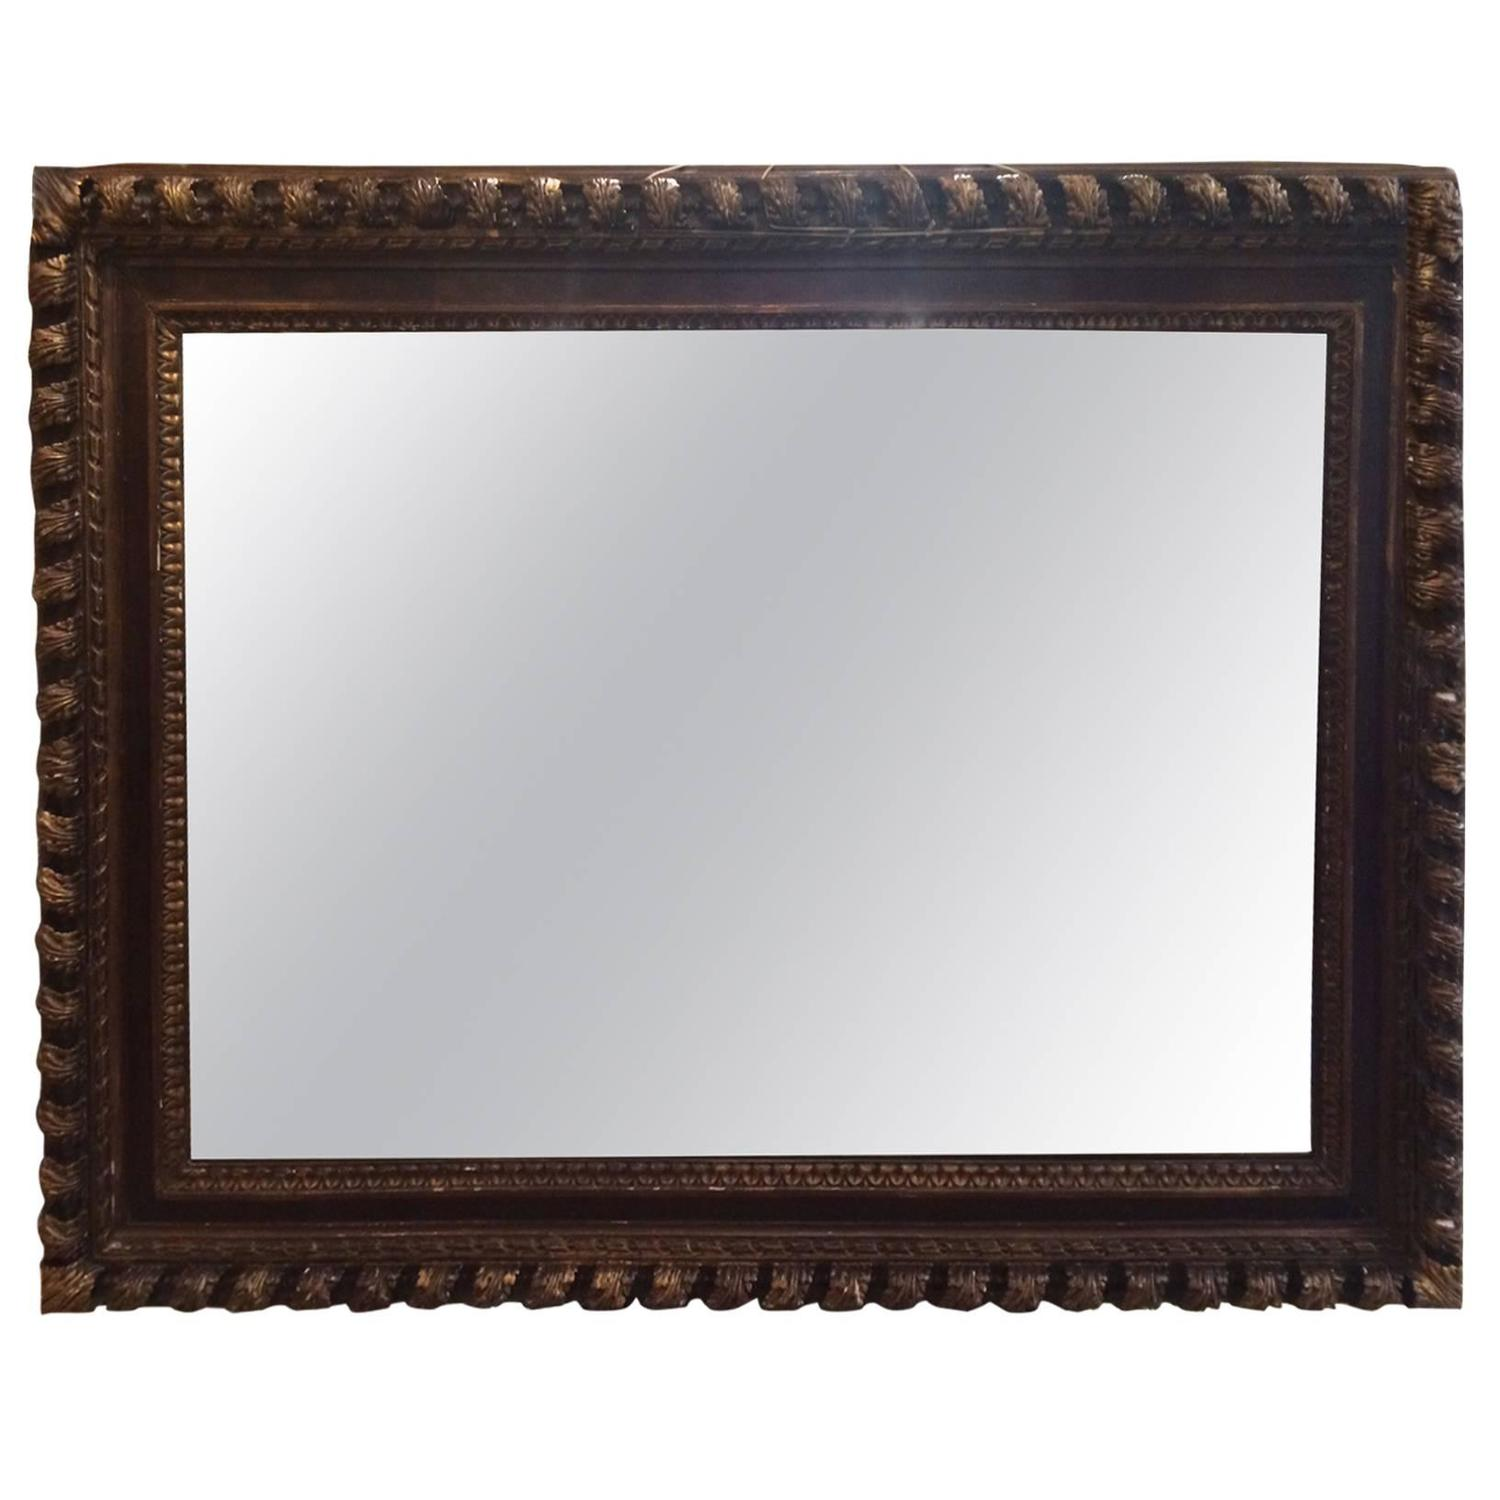 Large carved wood frame mirror for sale at 1stdibs Large wooden mirrors for sale